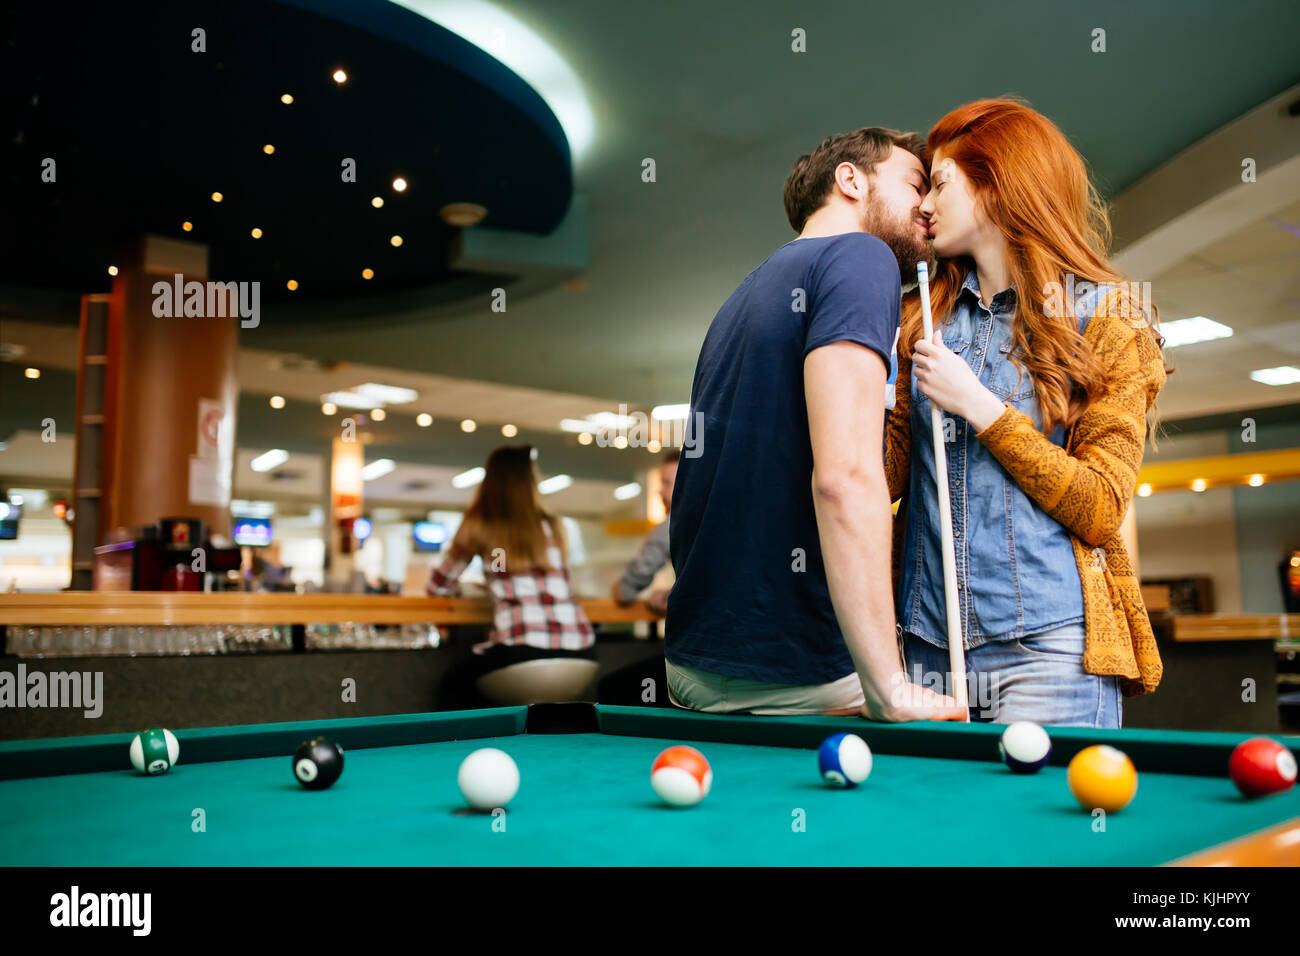 kissing games in the pool